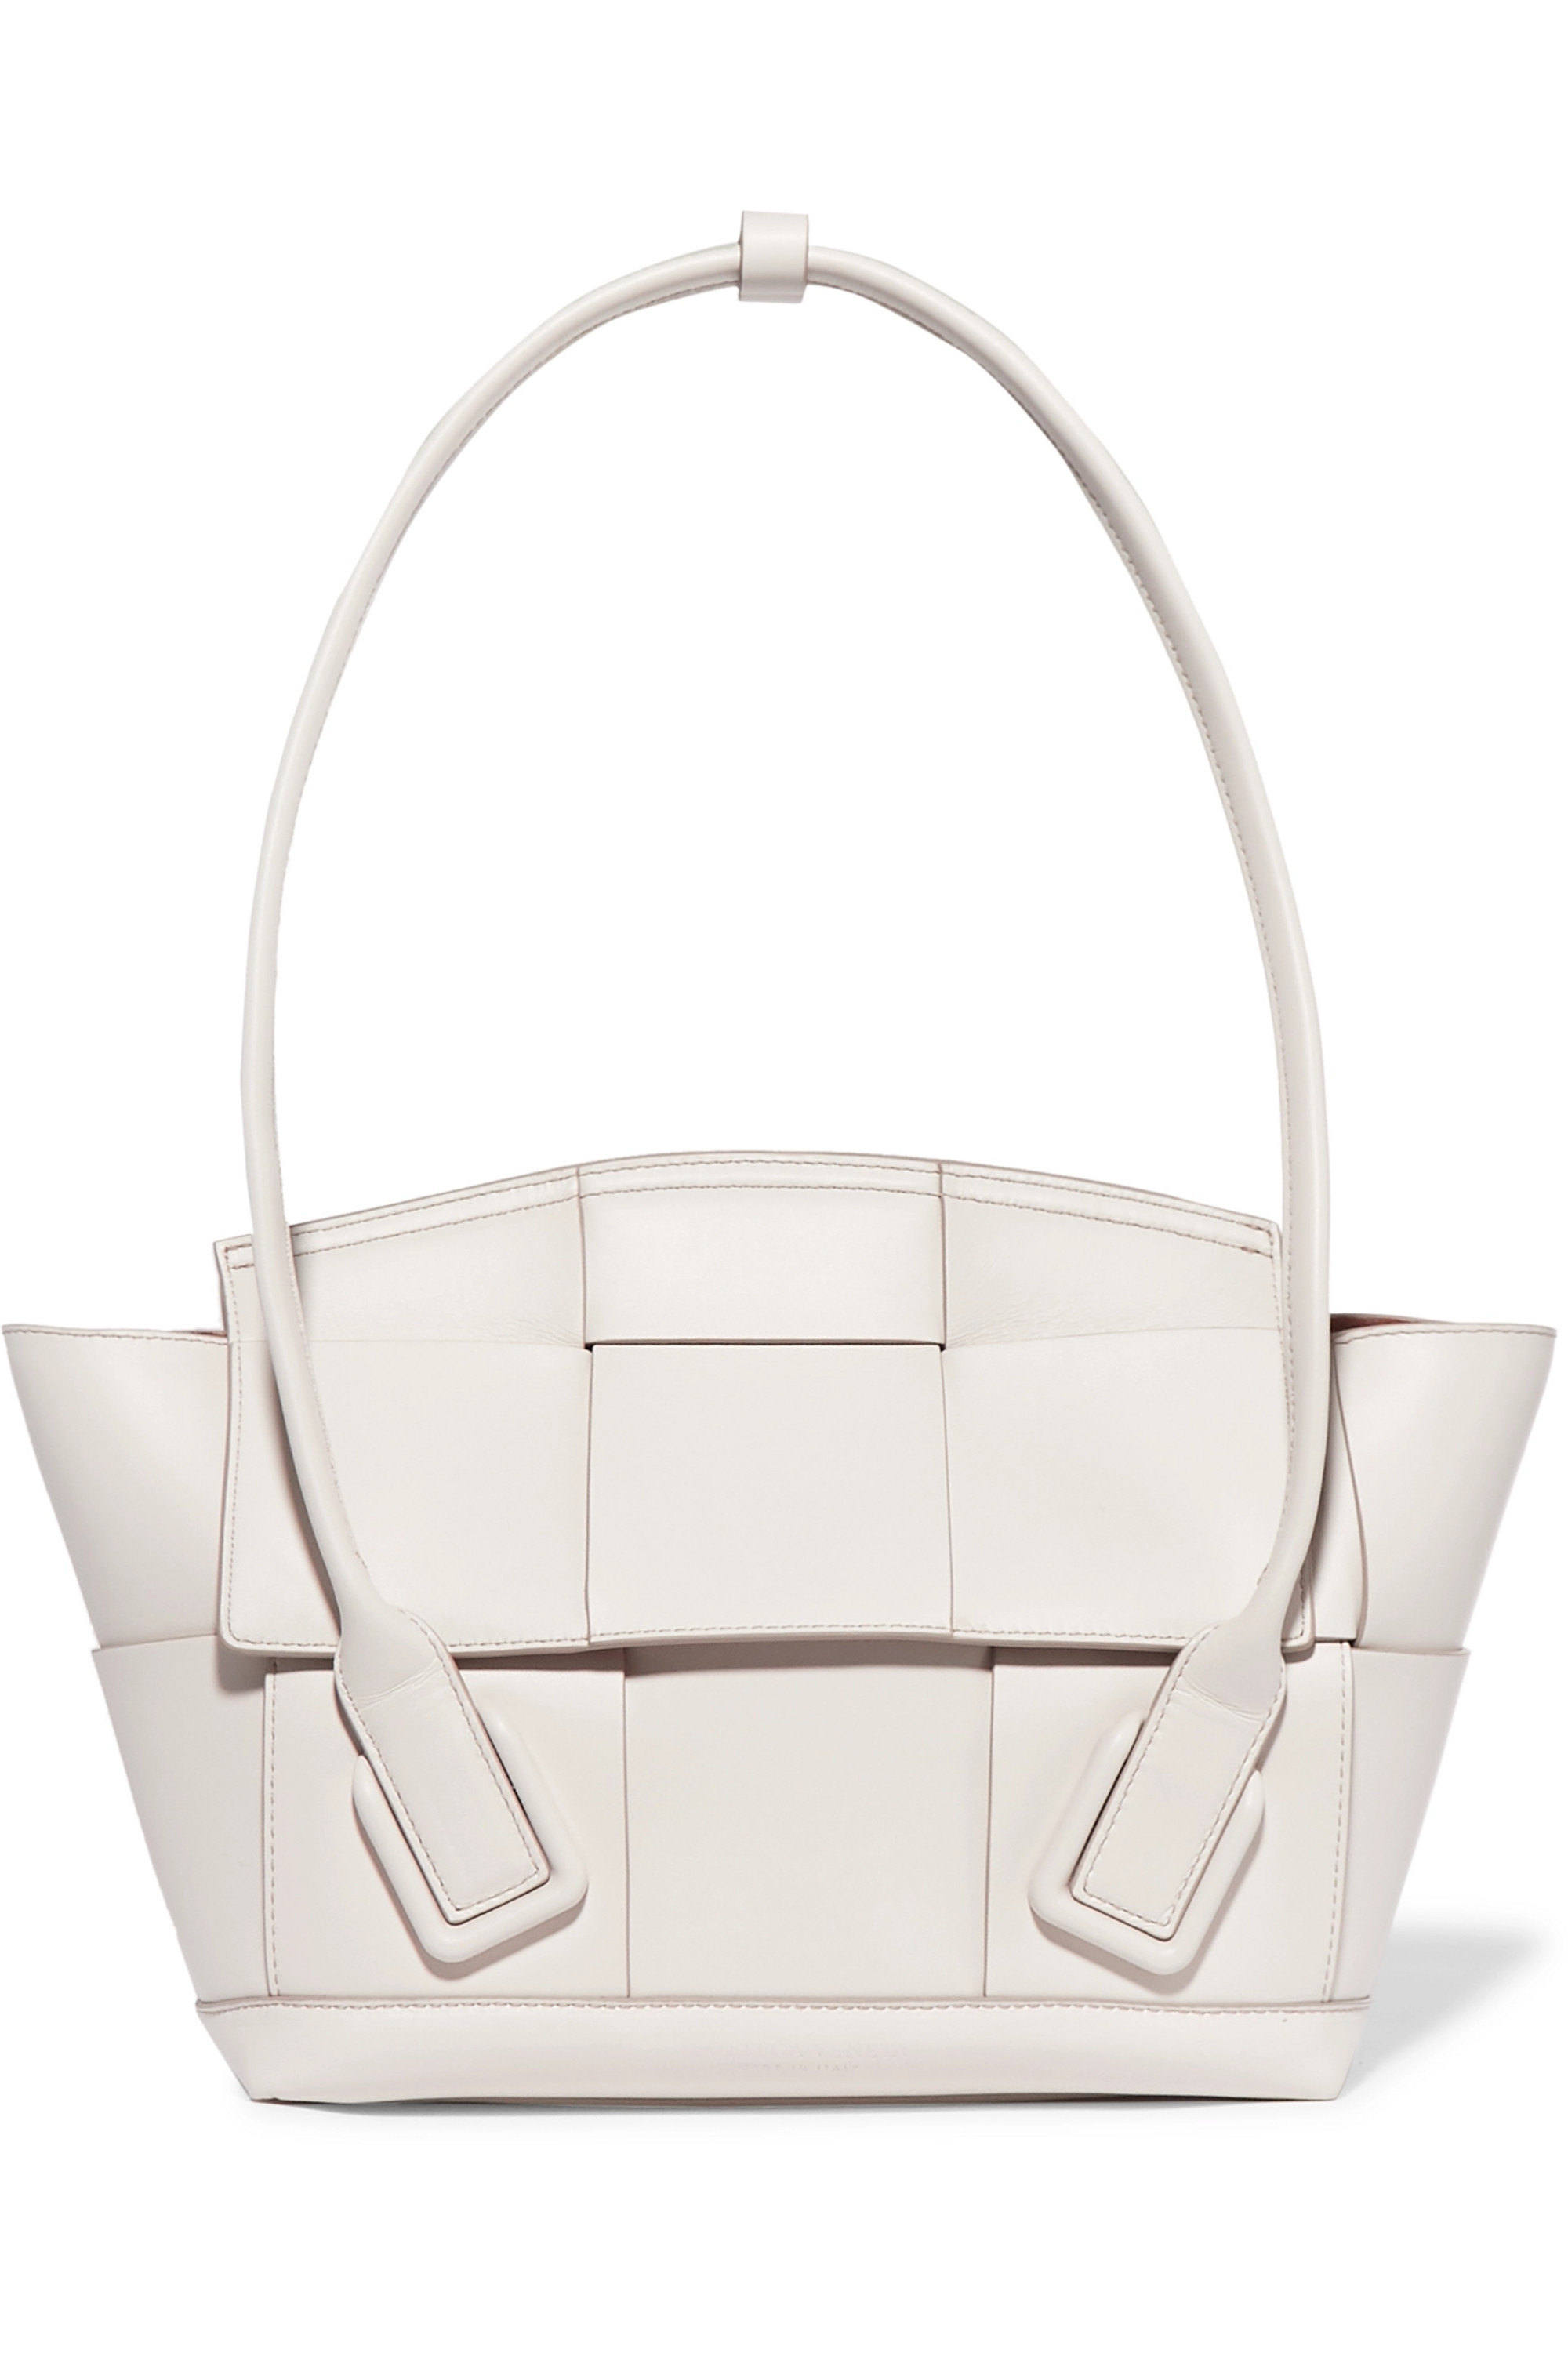 Bottega Veneta Arco small intrecciato leather tote